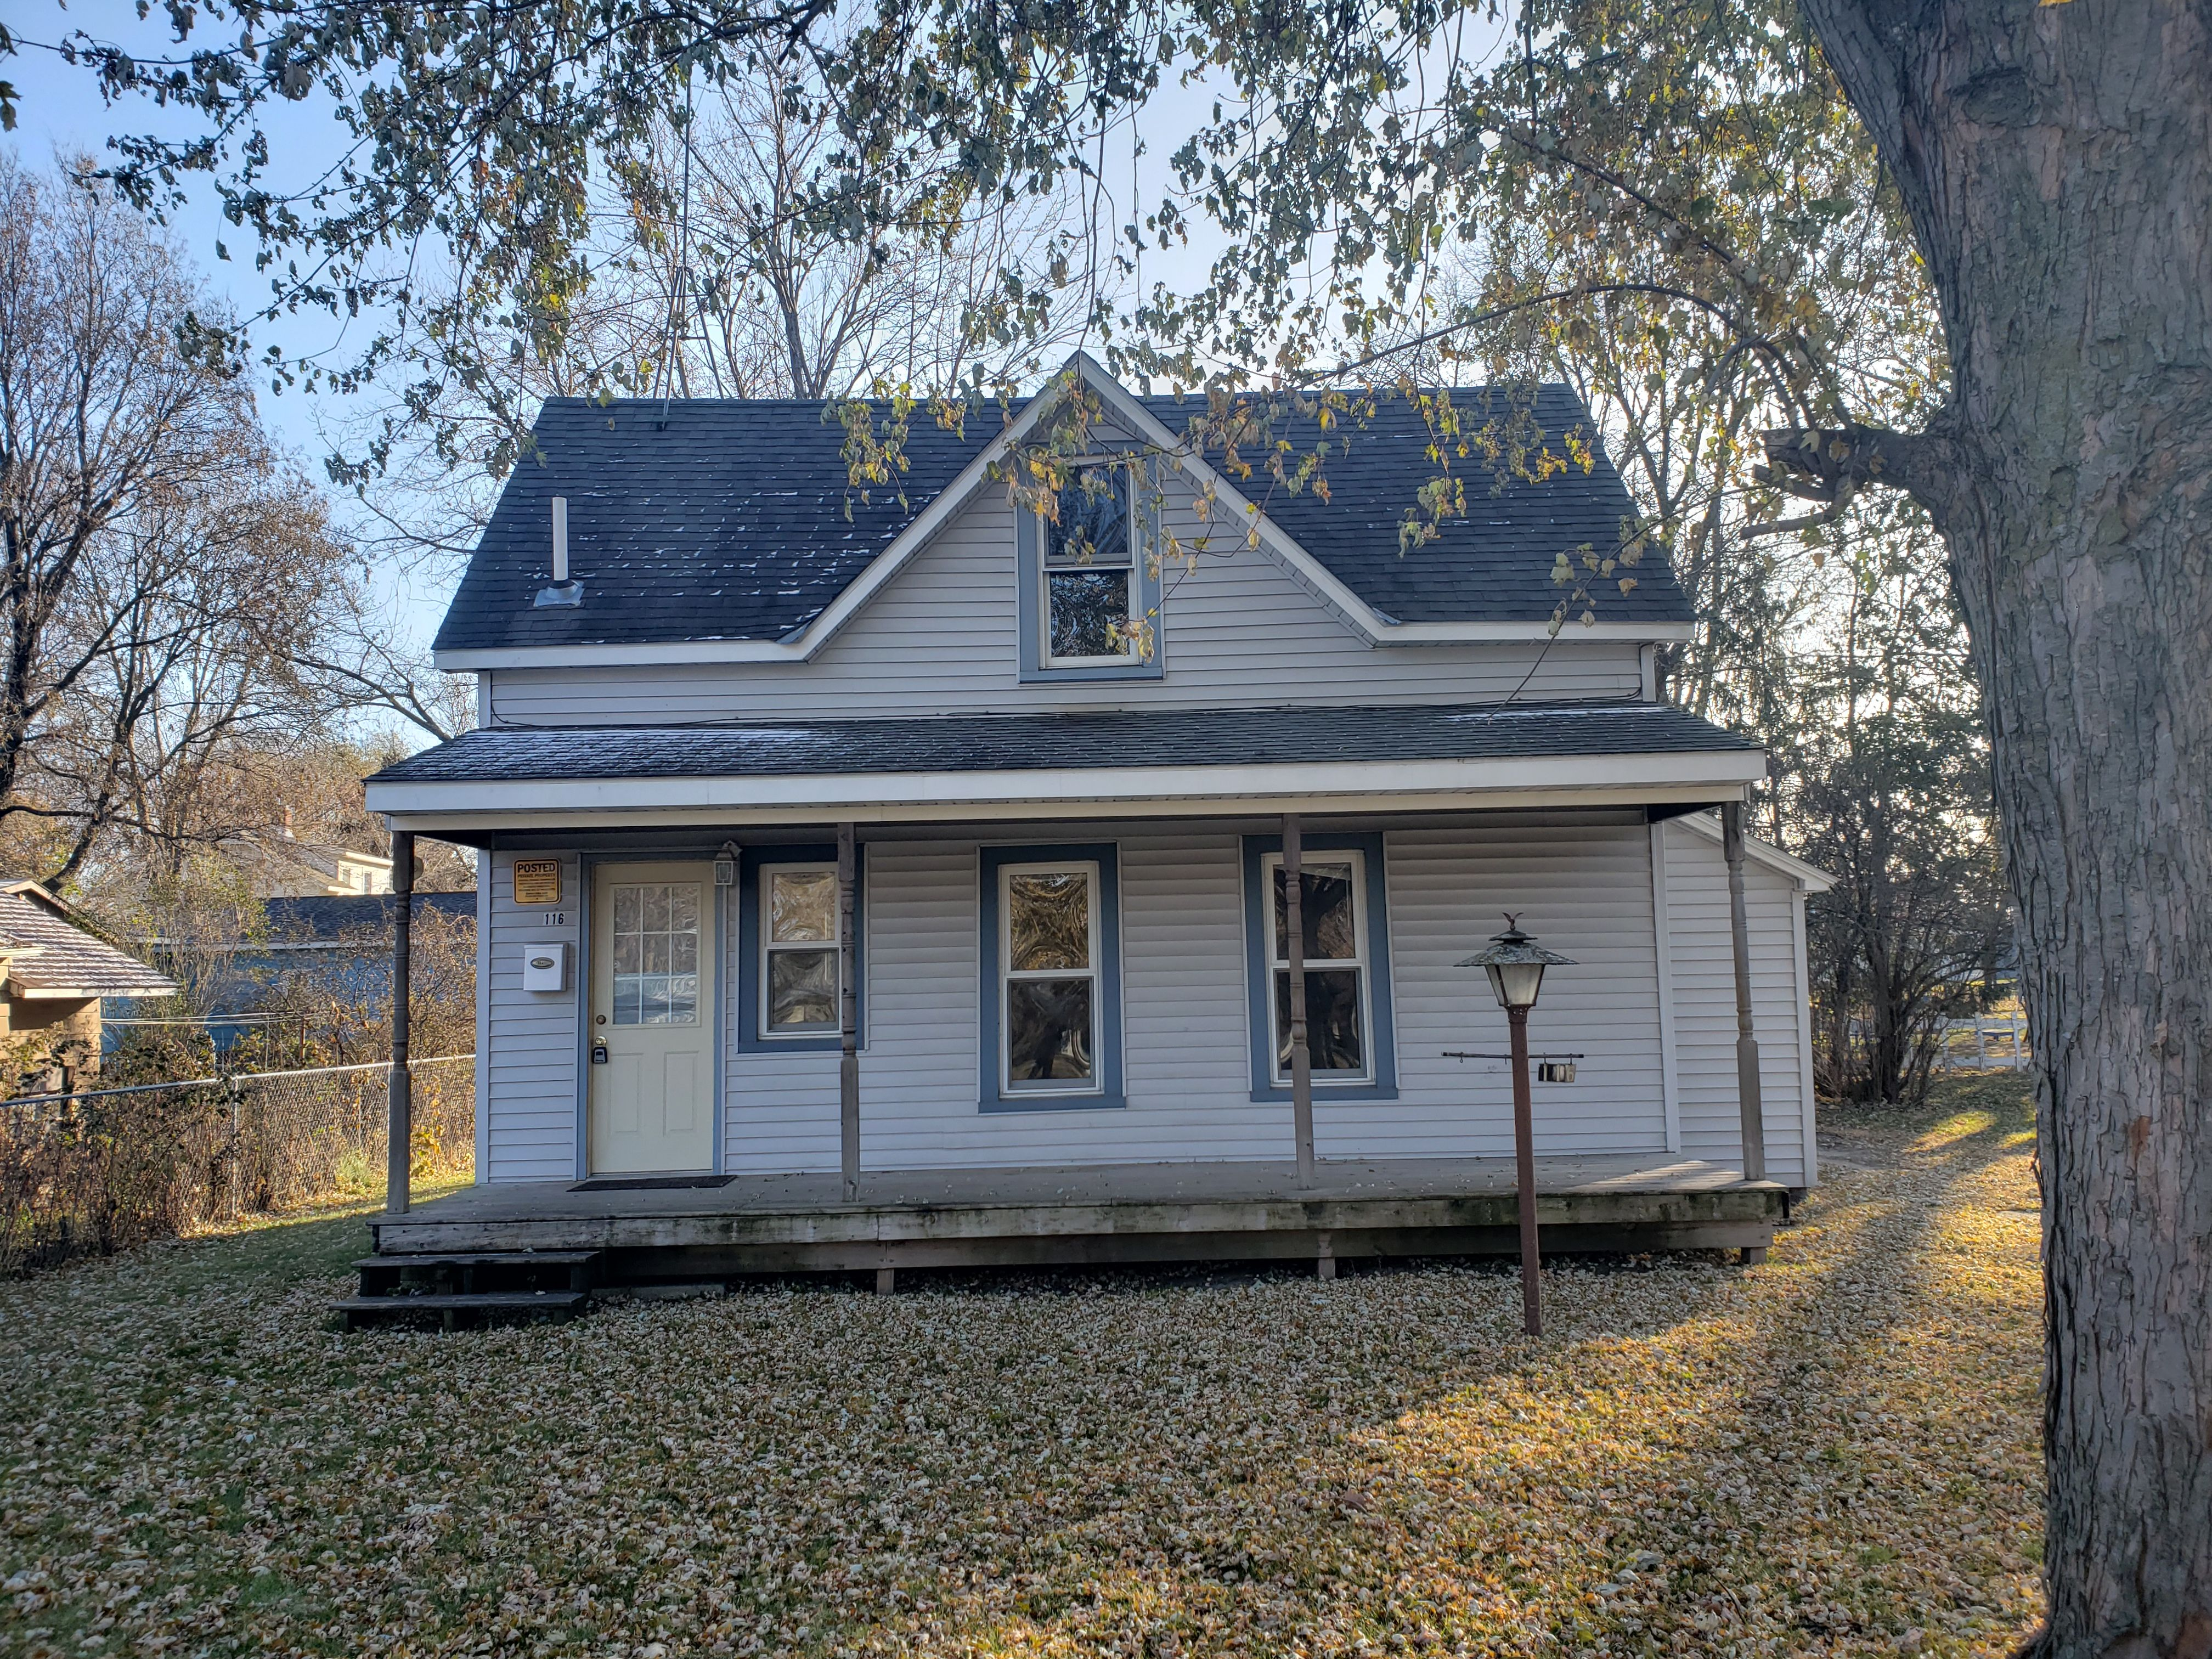 1bedroom house for rent in Litchfield, 900/ month, call